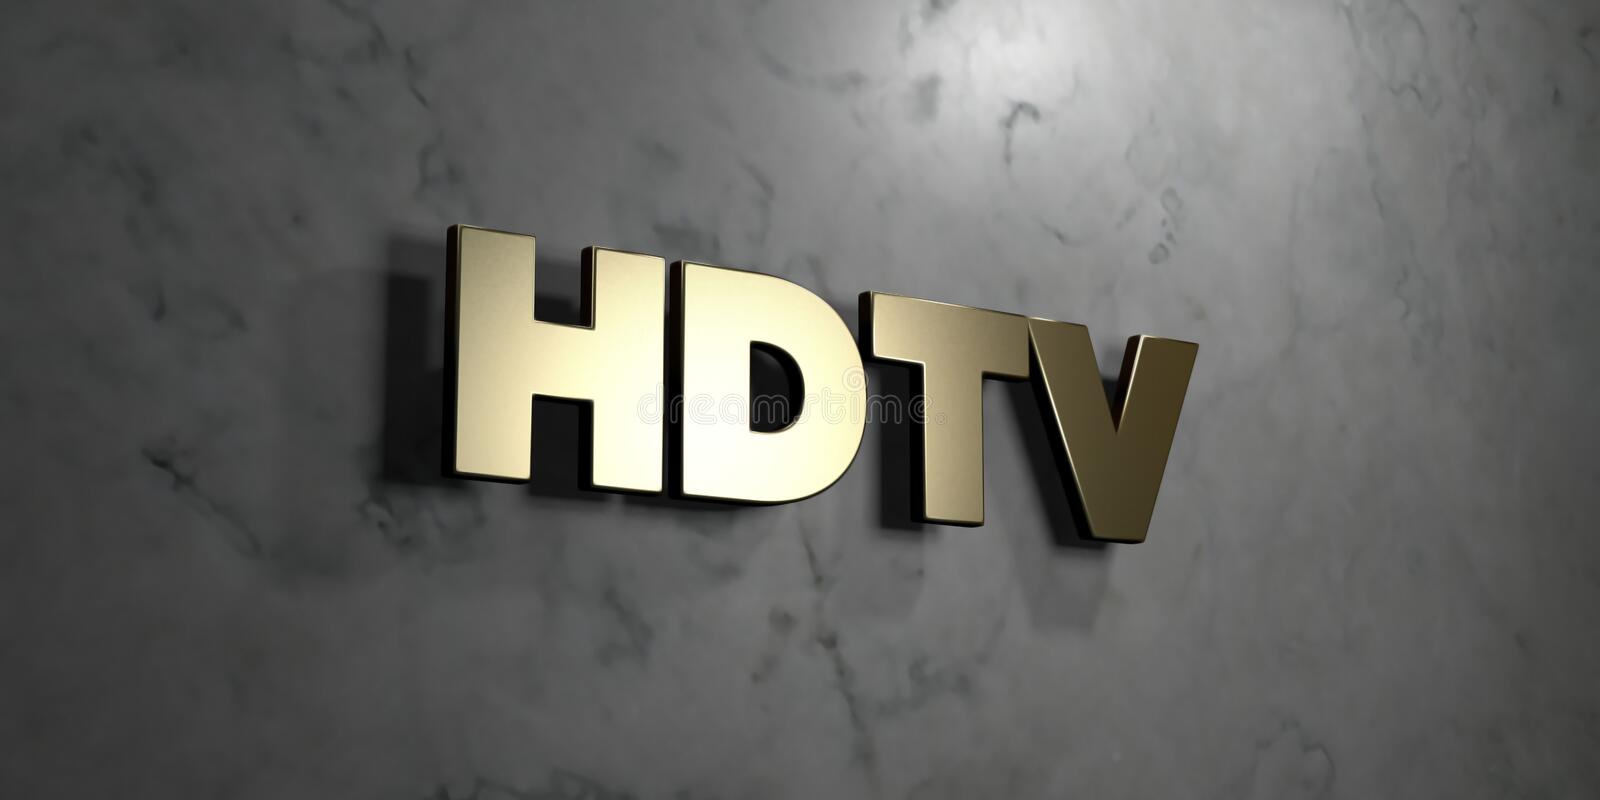 Hdtv - Gold sign mounted on glossy marble wall - 3D rendered royalty free stock illustration. This image can be used for an online website banner ad or a print vector illustration